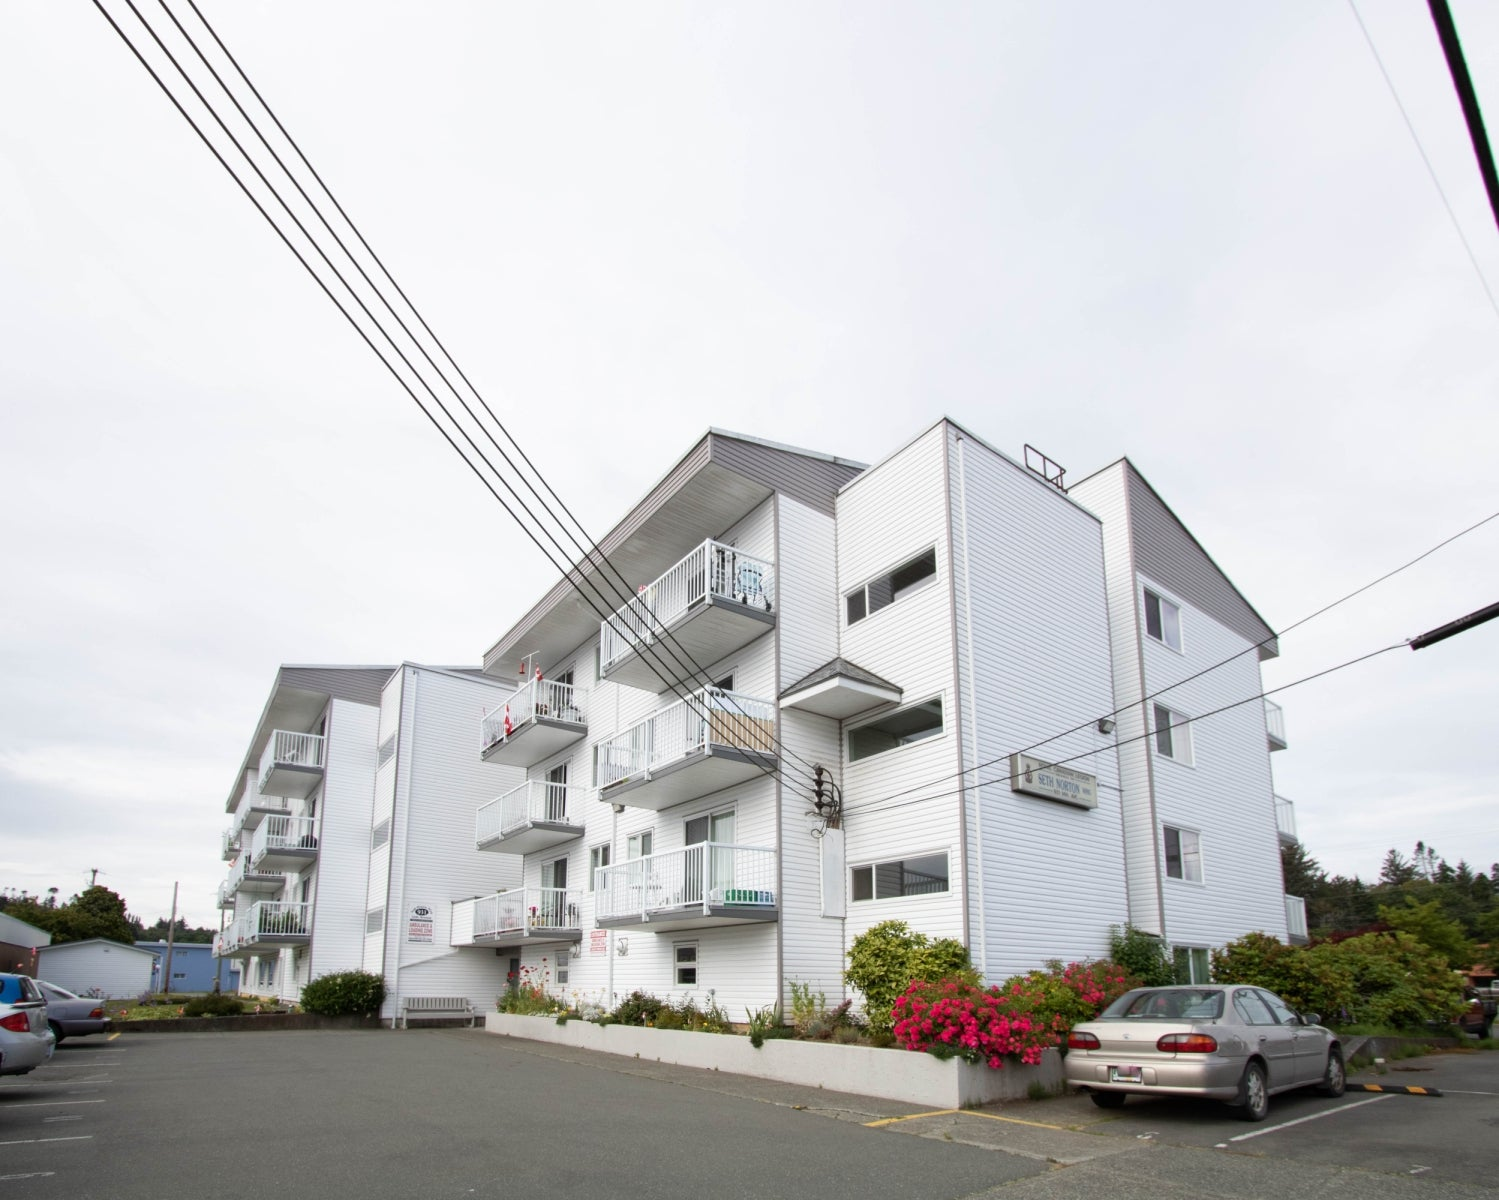 John Perkins Memorial Housing 930 13 Avenue - Waitlist - CR Campbell River Central Condo Apartment for sale(380594) #4